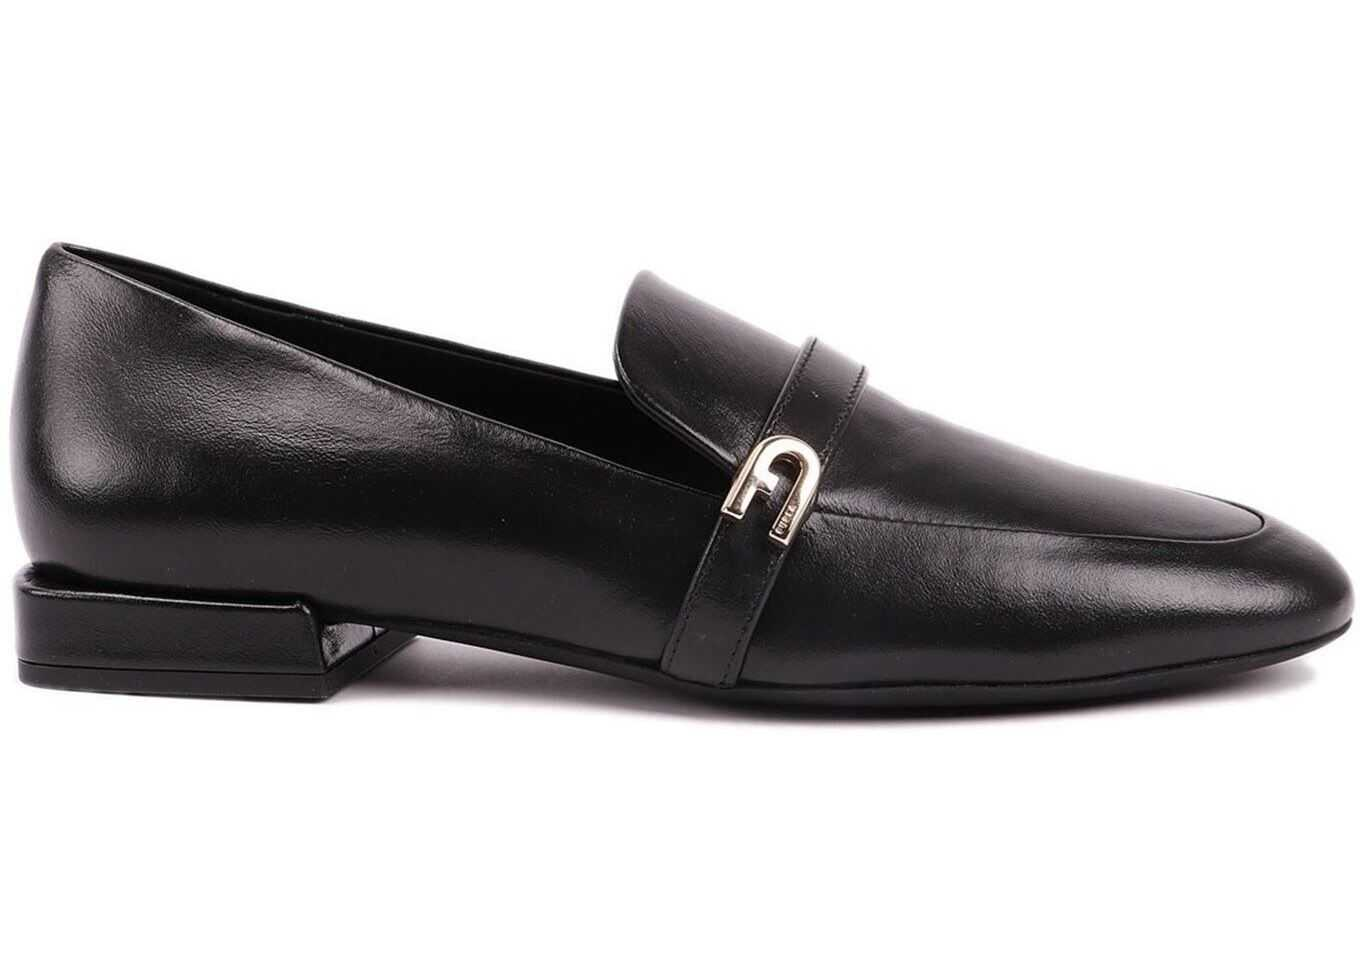 Furla 1927 Leather Loafers Black